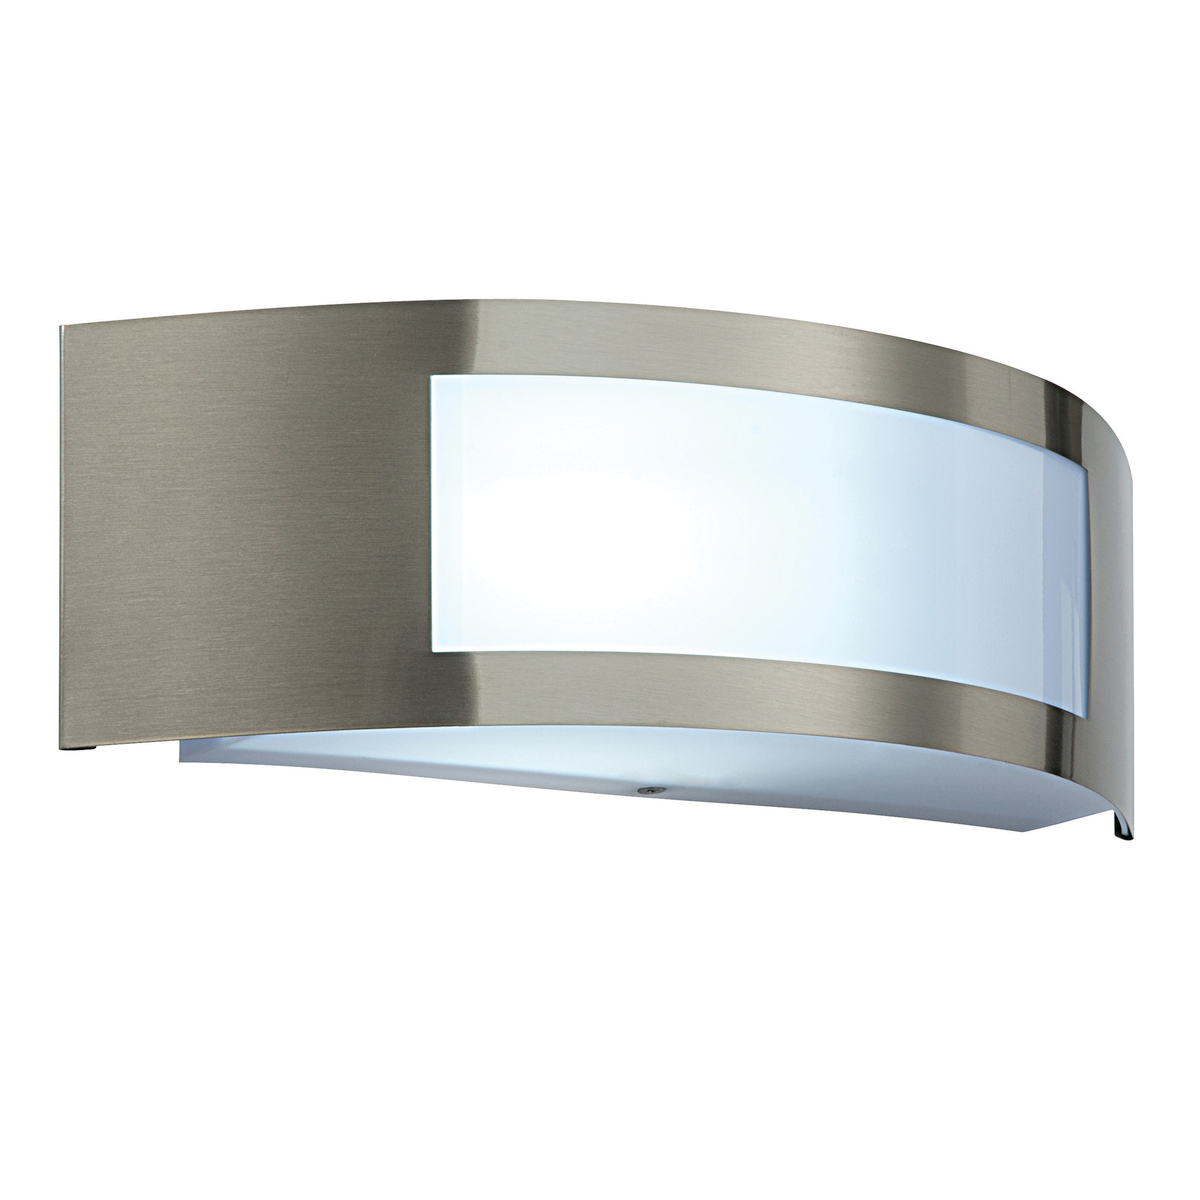 Modern Curved Stylish Outdoor Garden Wall Light E27 Fitting Stainless Steel IP44